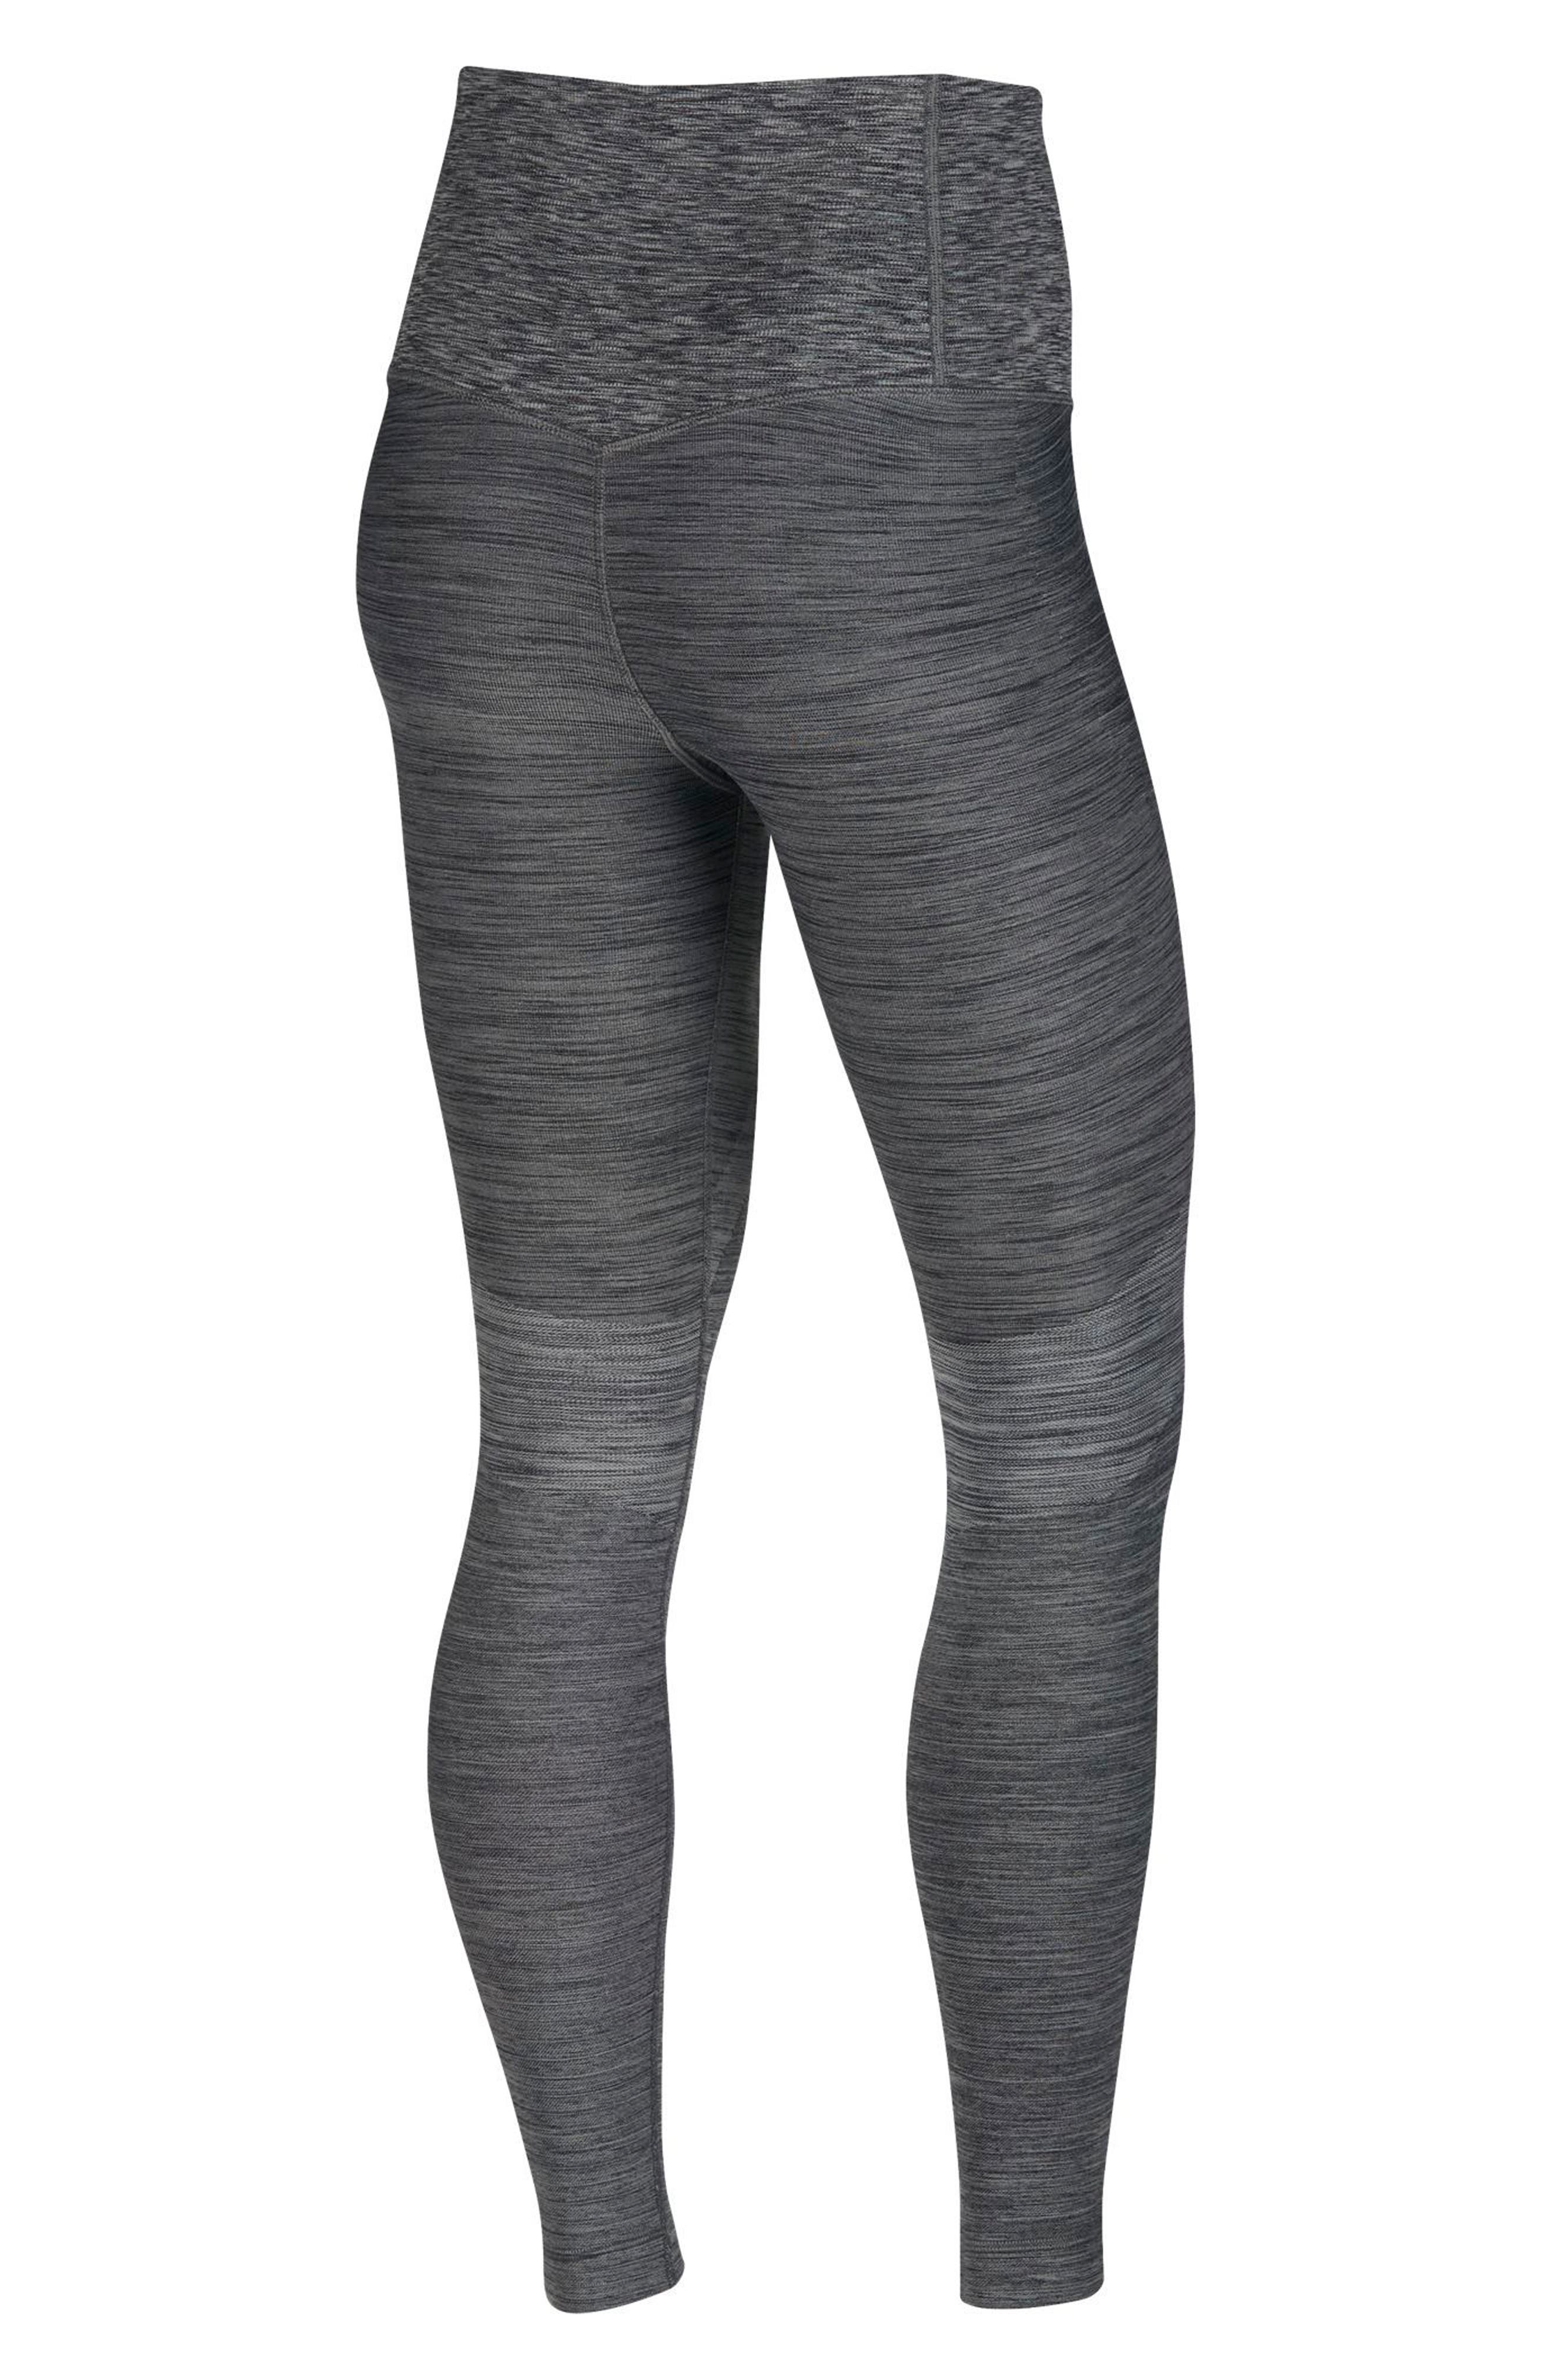 Power Sculpt Training Tights,                             Alternate thumbnail 9, color,